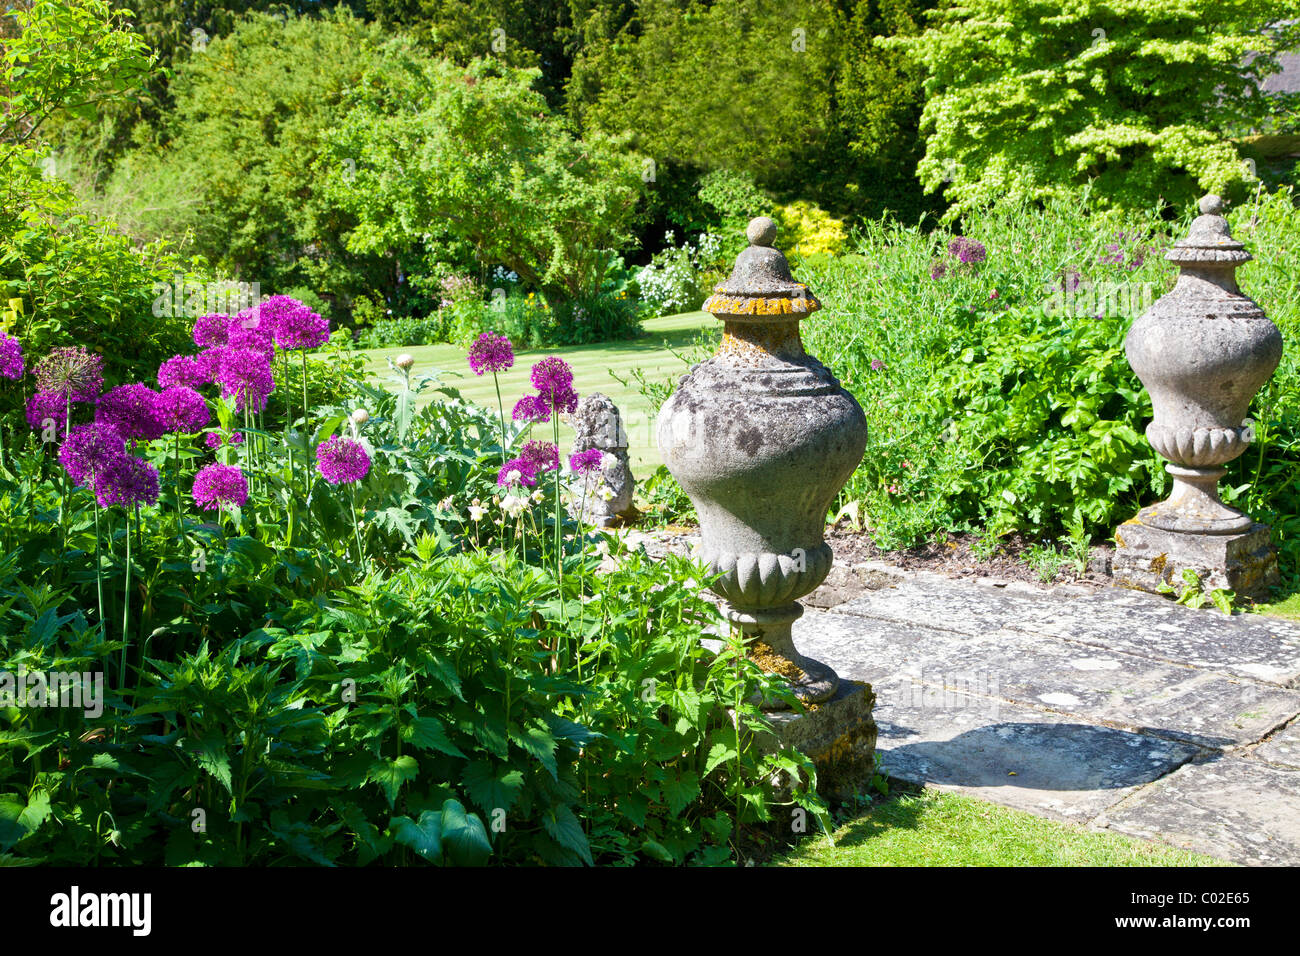 stone garden ornament stockfotos stone garden ornament bilder alamy. Black Bedroom Furniture Sets. Home Design Ideas